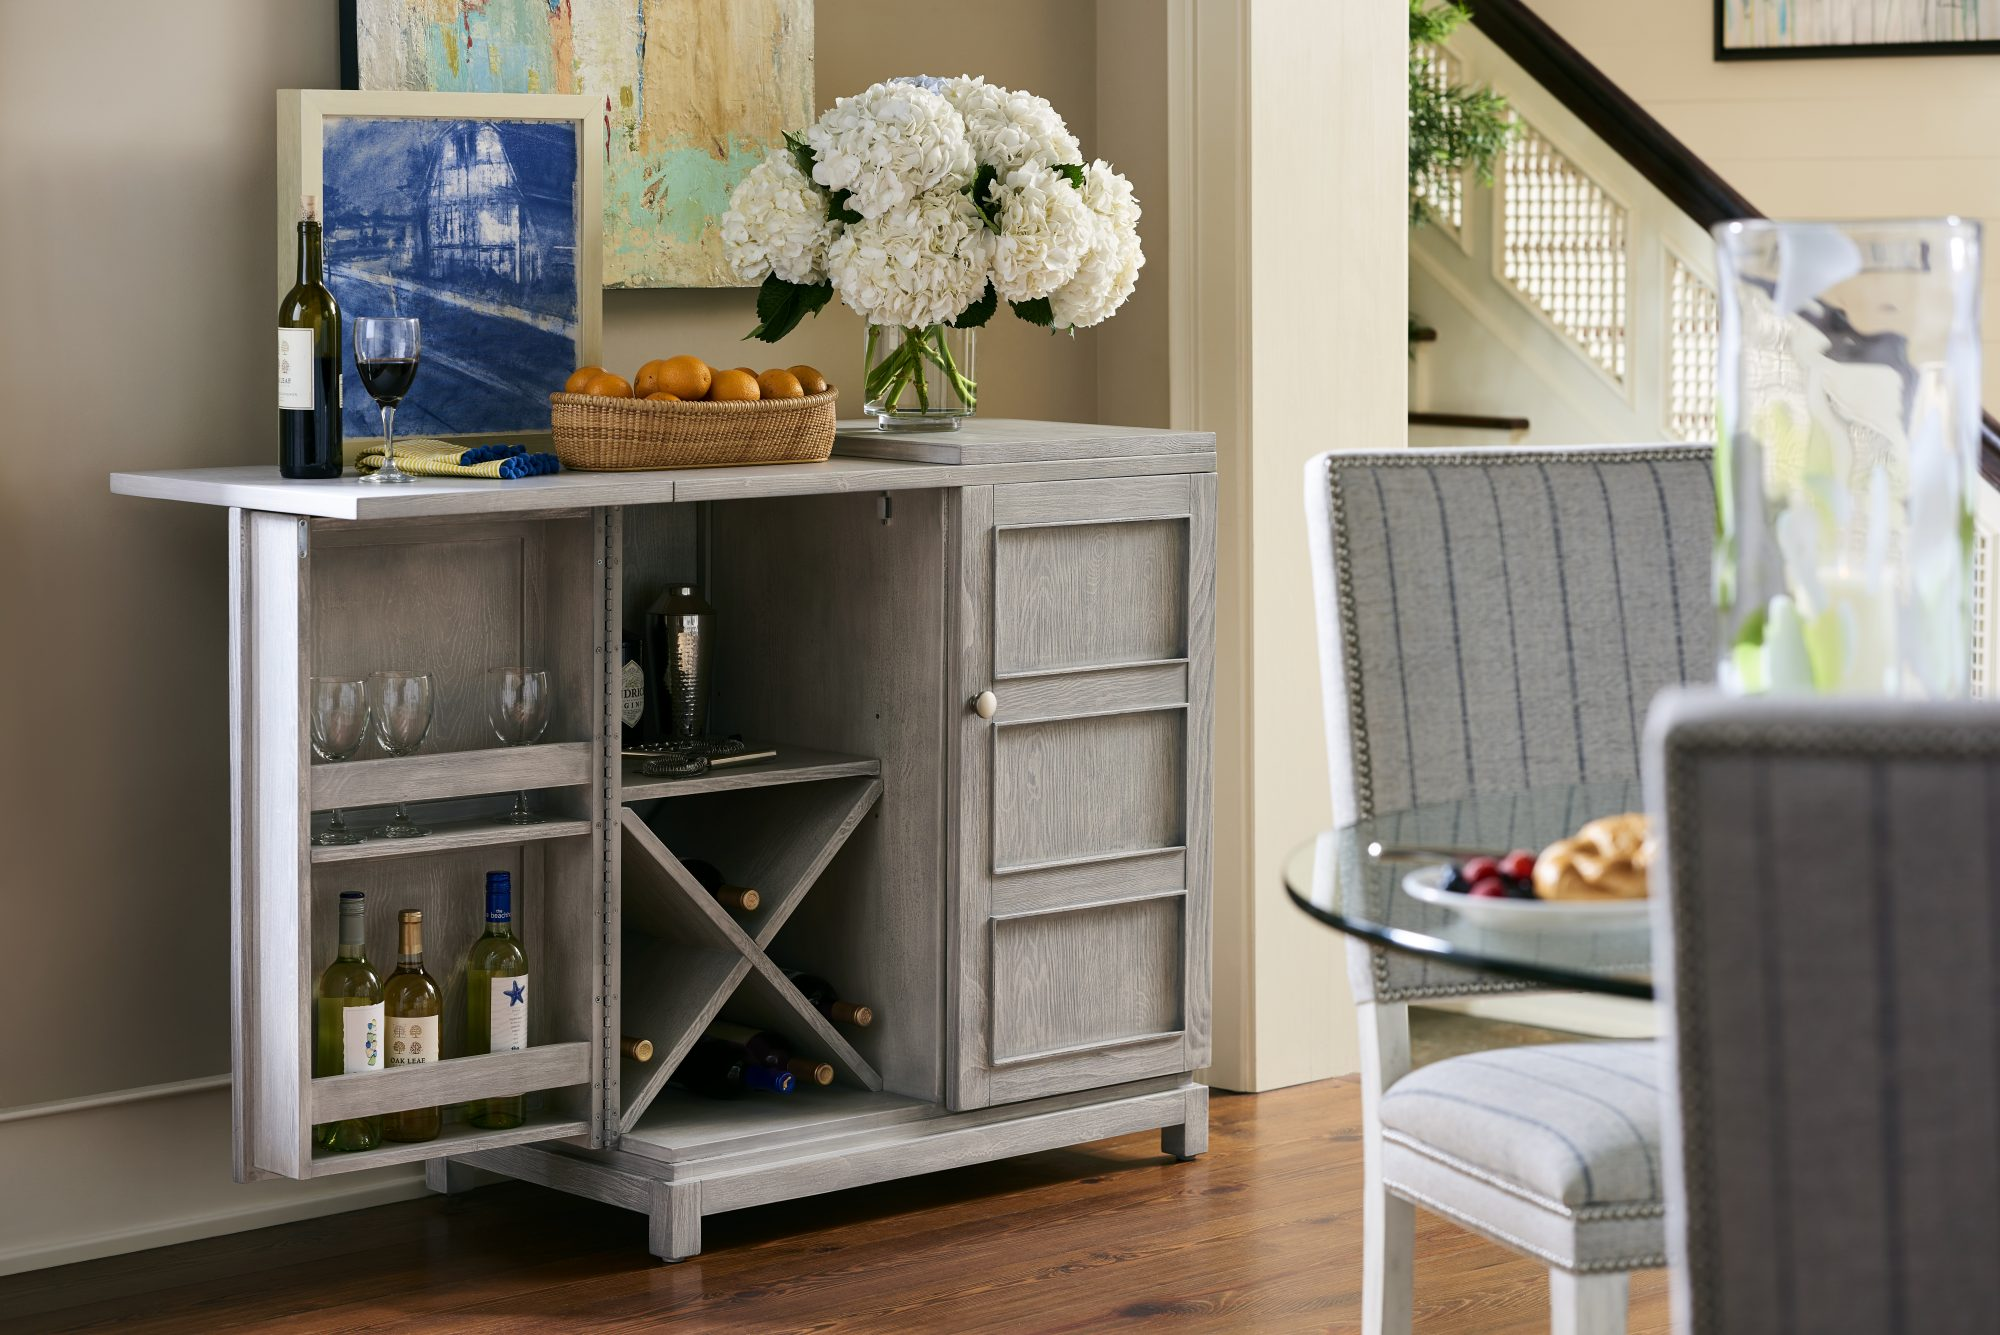 Bar cabinet from the Coastal Living Furniture Collection